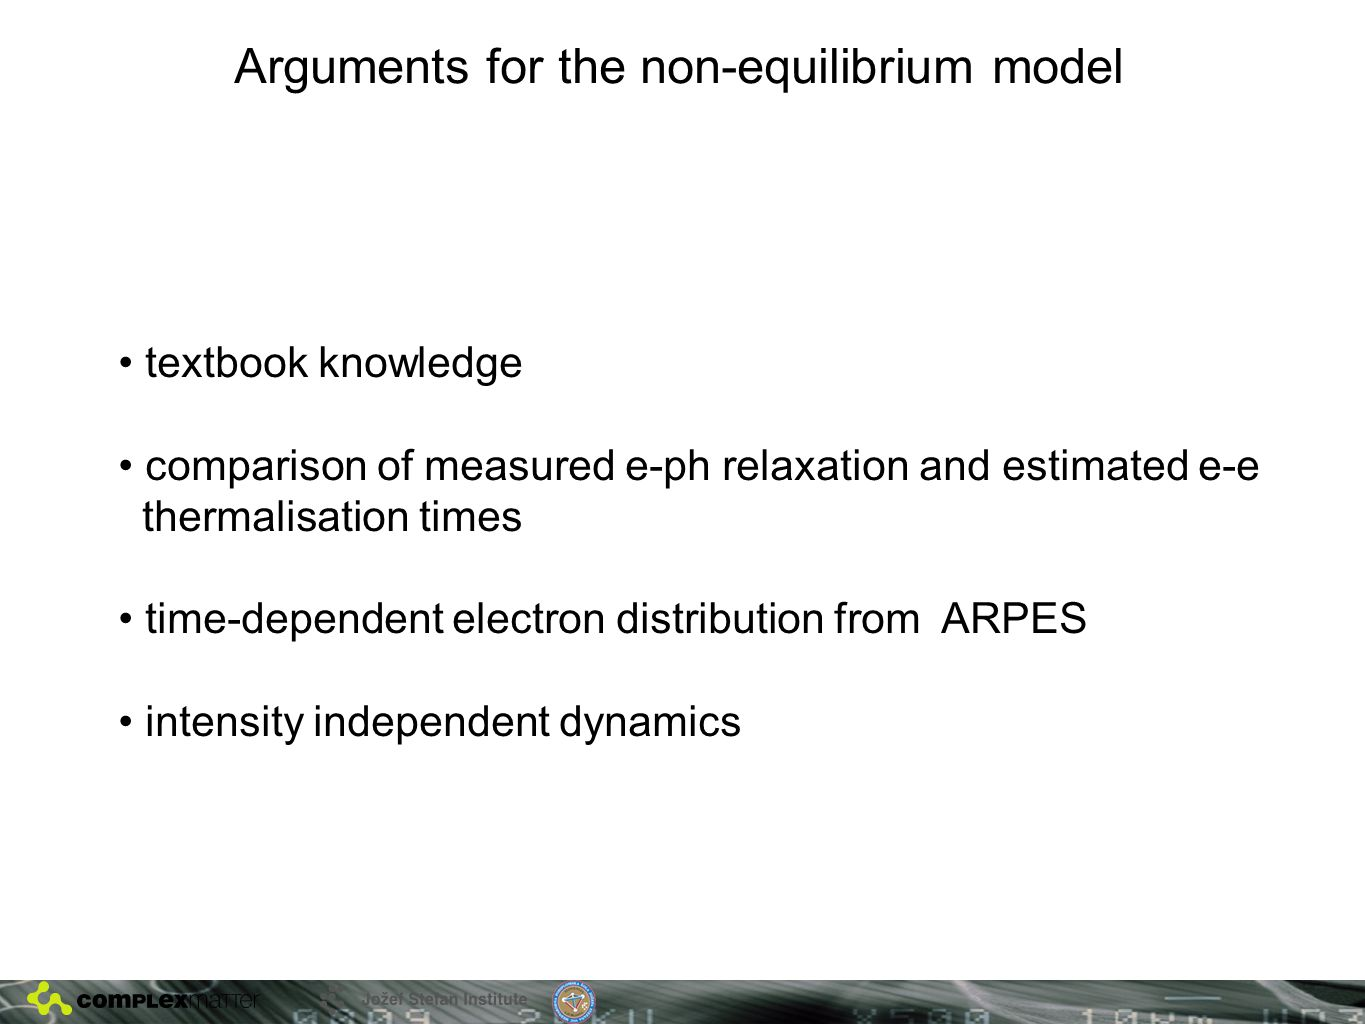 Arguments for the non-equilibrium model textbook knowledge comparison of measured e-ph relaxation and estimated e-e thermalisation times time-dependen